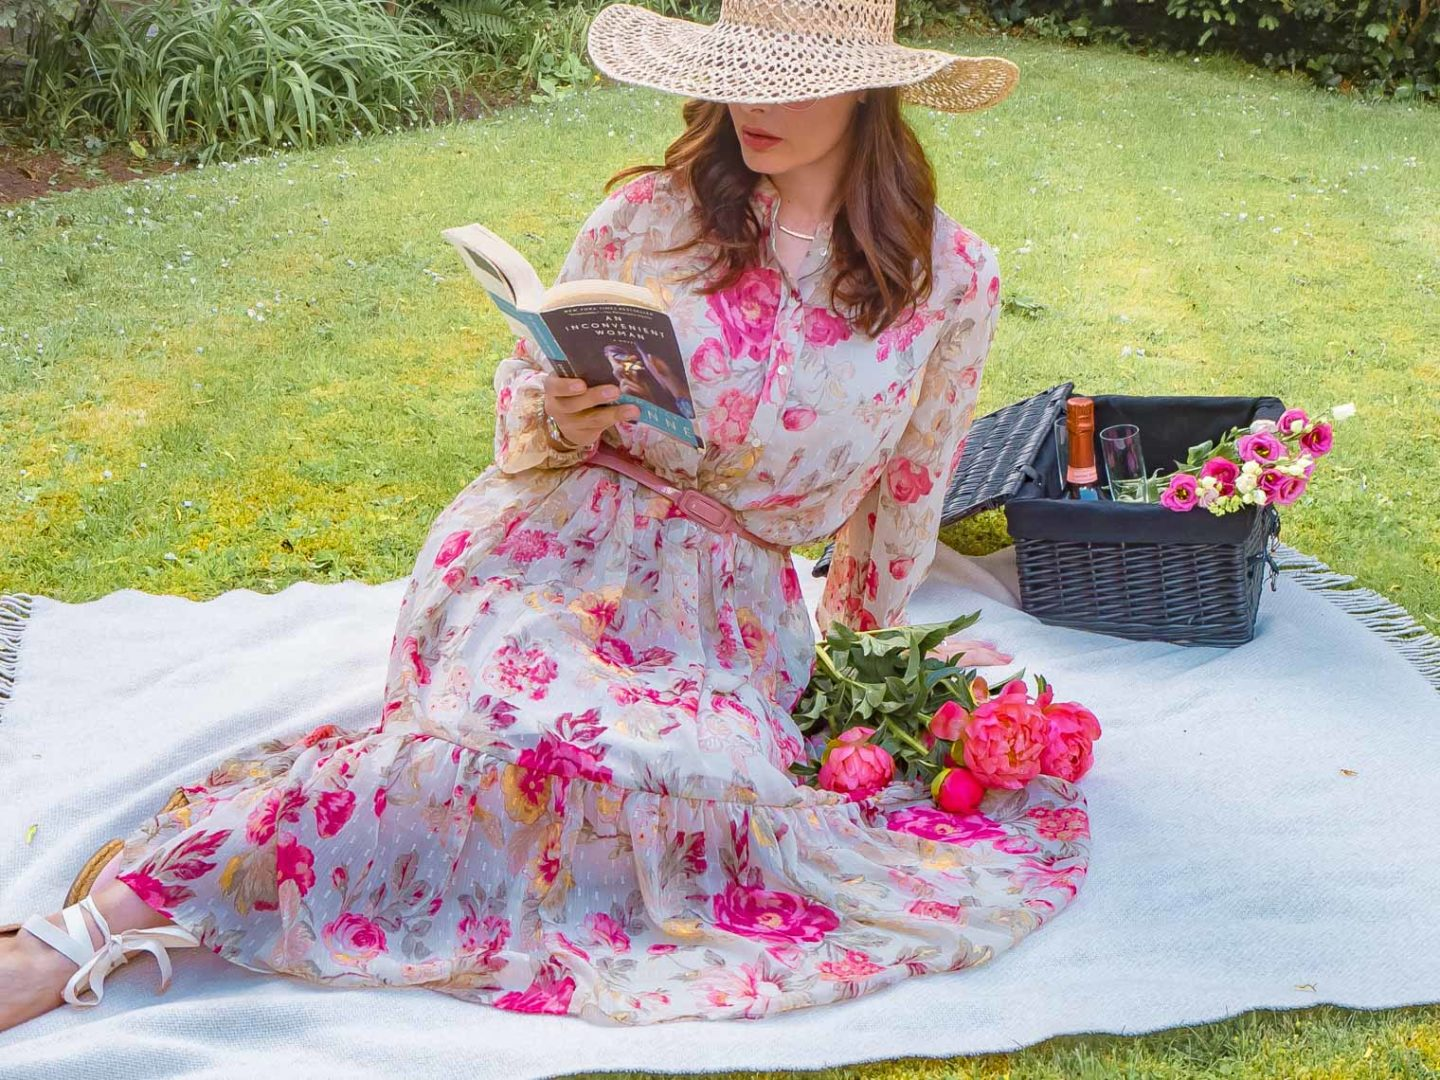 3 types of summer dresses I will be rotating this year